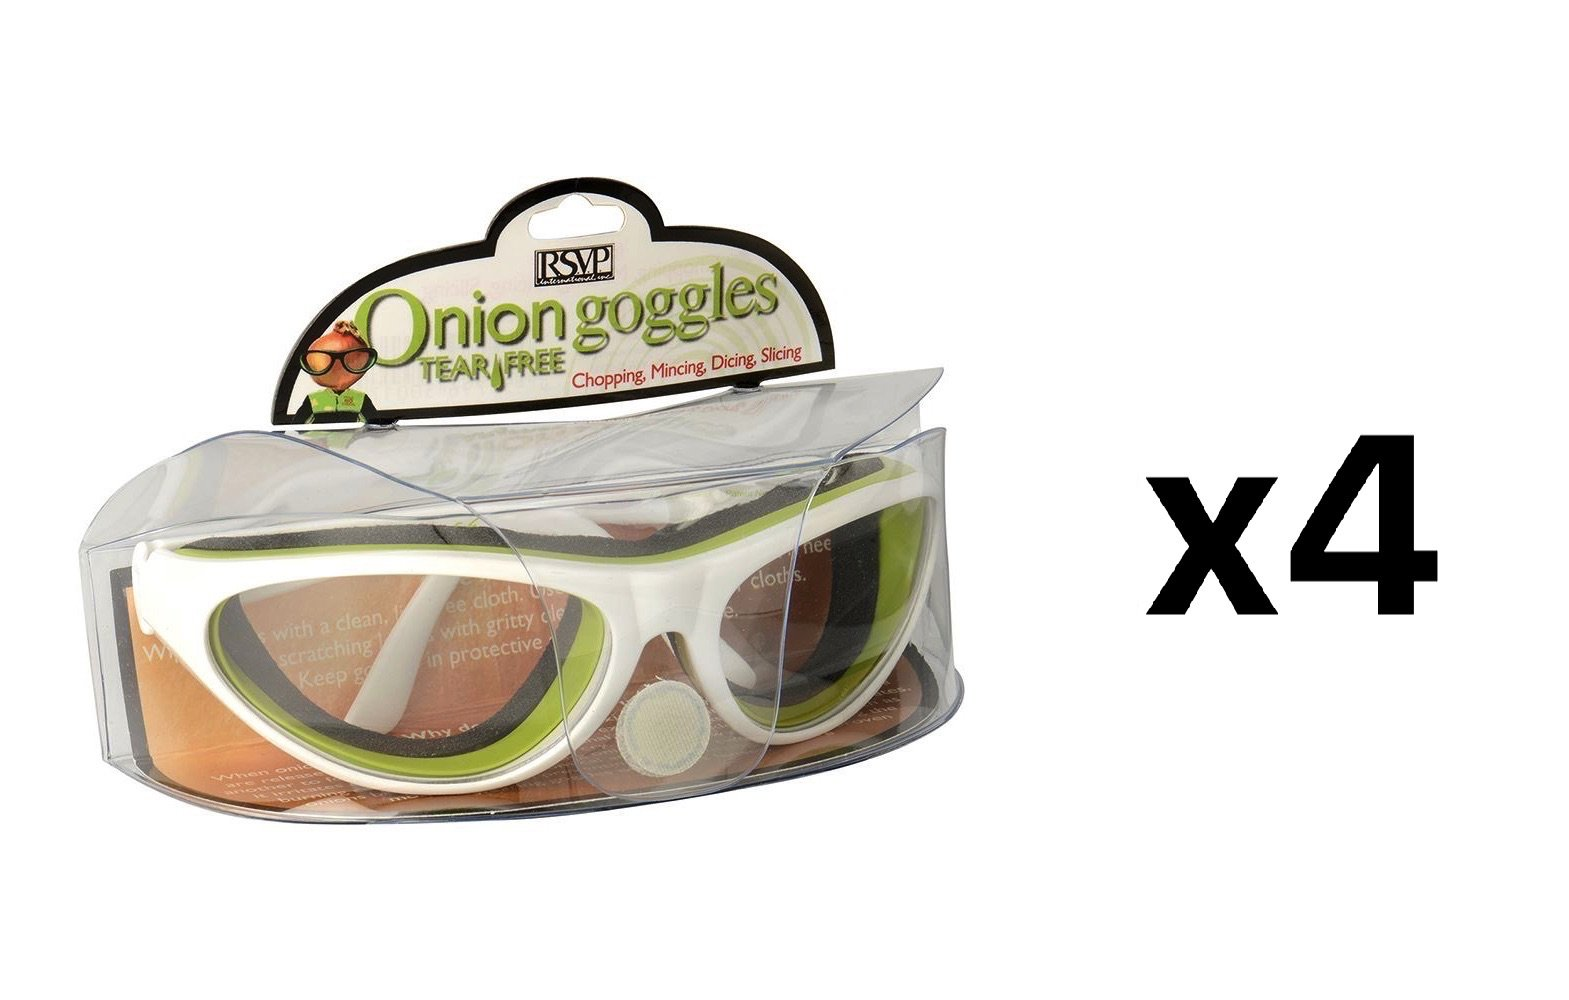 RSVP Onion Goggles w/Case Tear Free Anti Fog Cutting Grilling WHITE (4-Pack) by RSVP